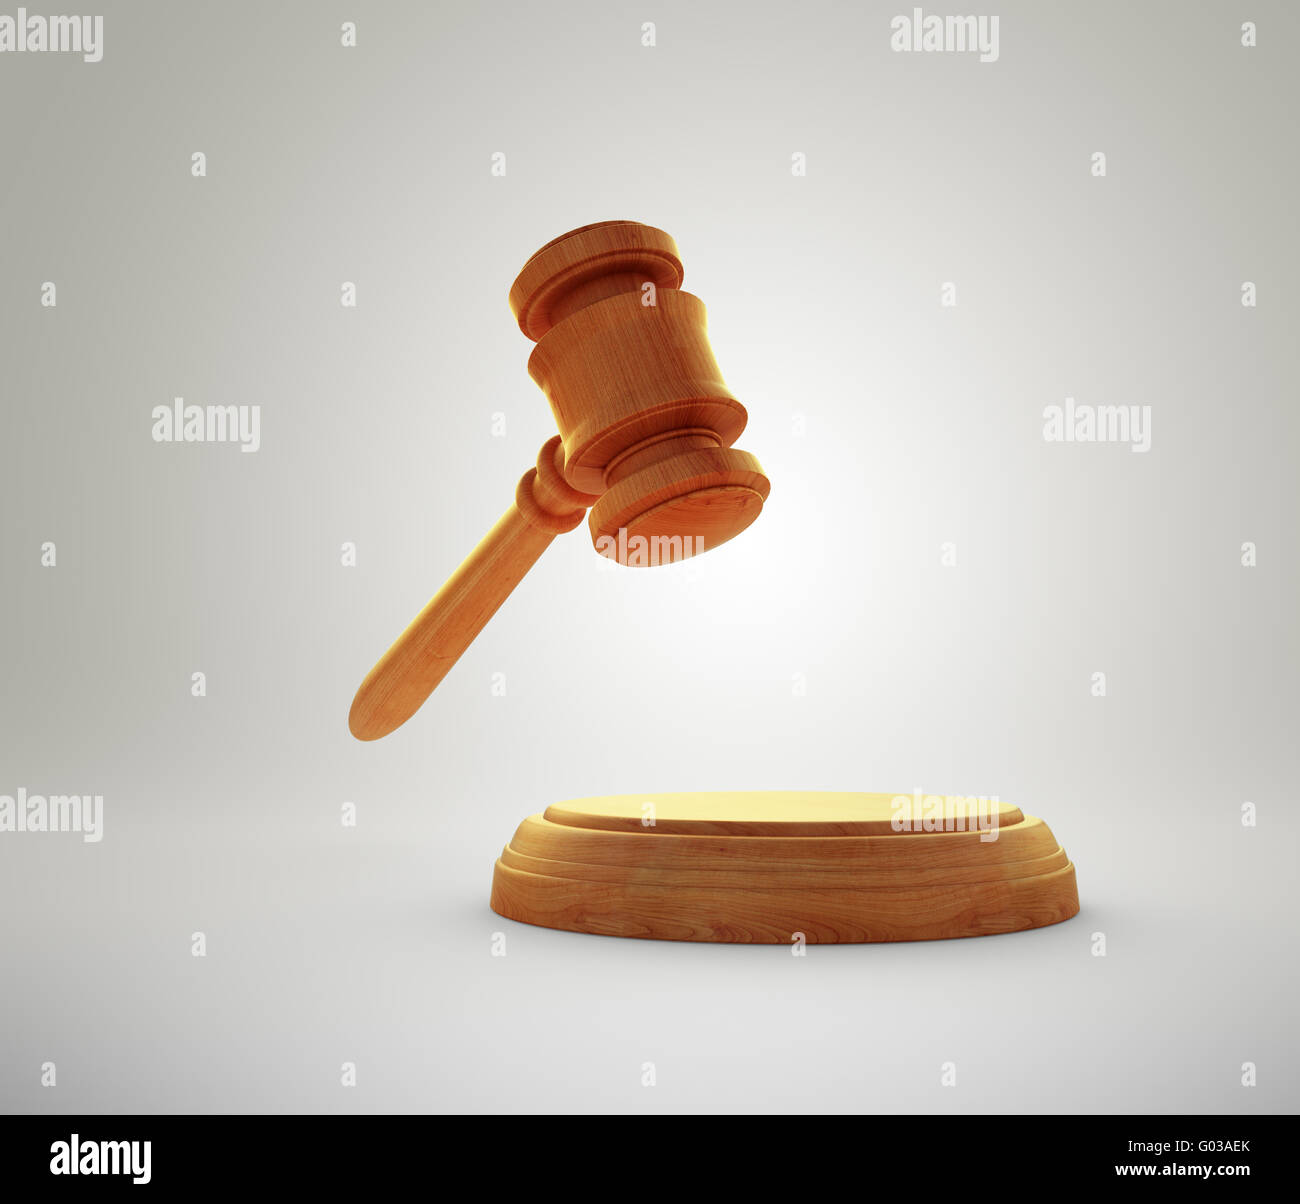 Gavel - auction bidding or justice concept image - Stock Image